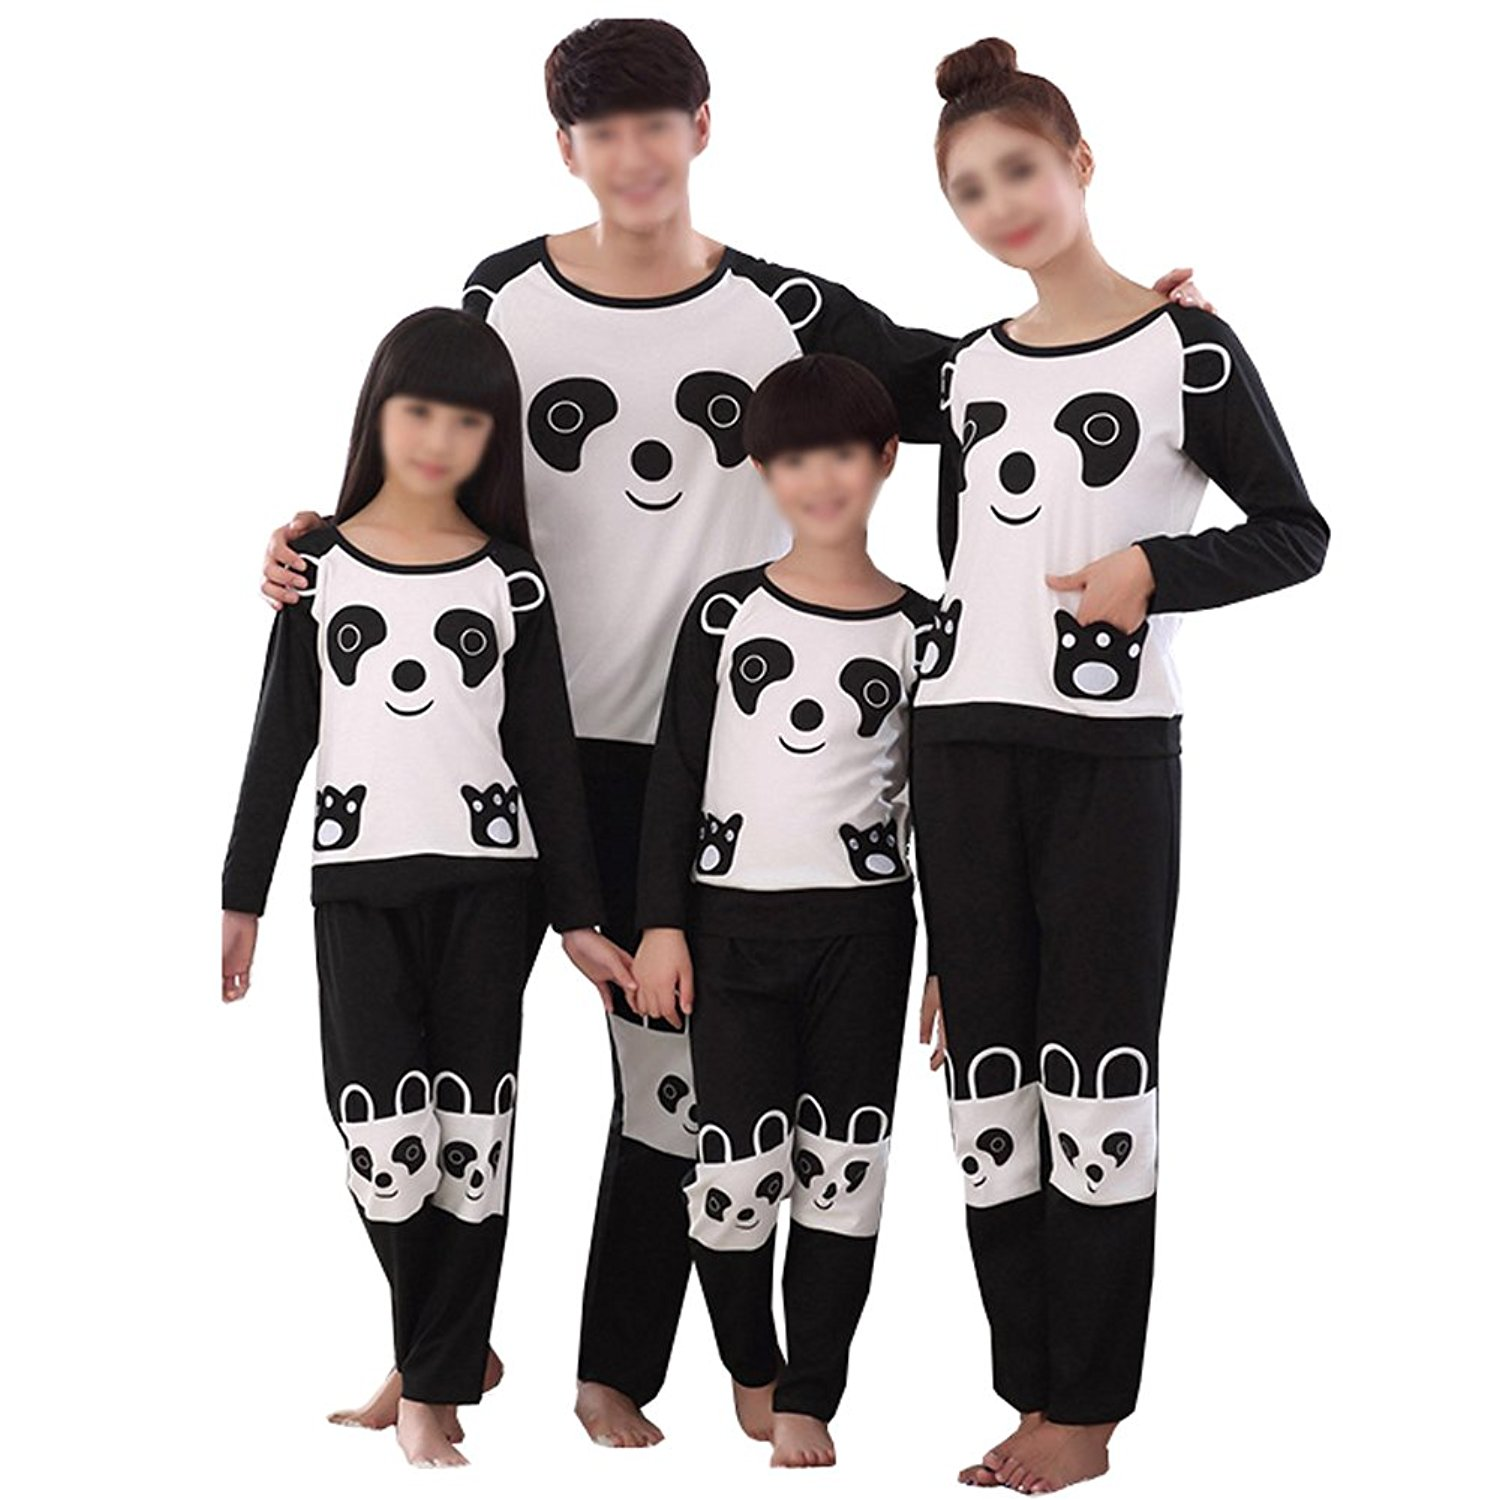 c83fde0d7e Get Quotations · KM Panda Printing Family Pajamas Long Sleeve Cotton Pajamas  Set